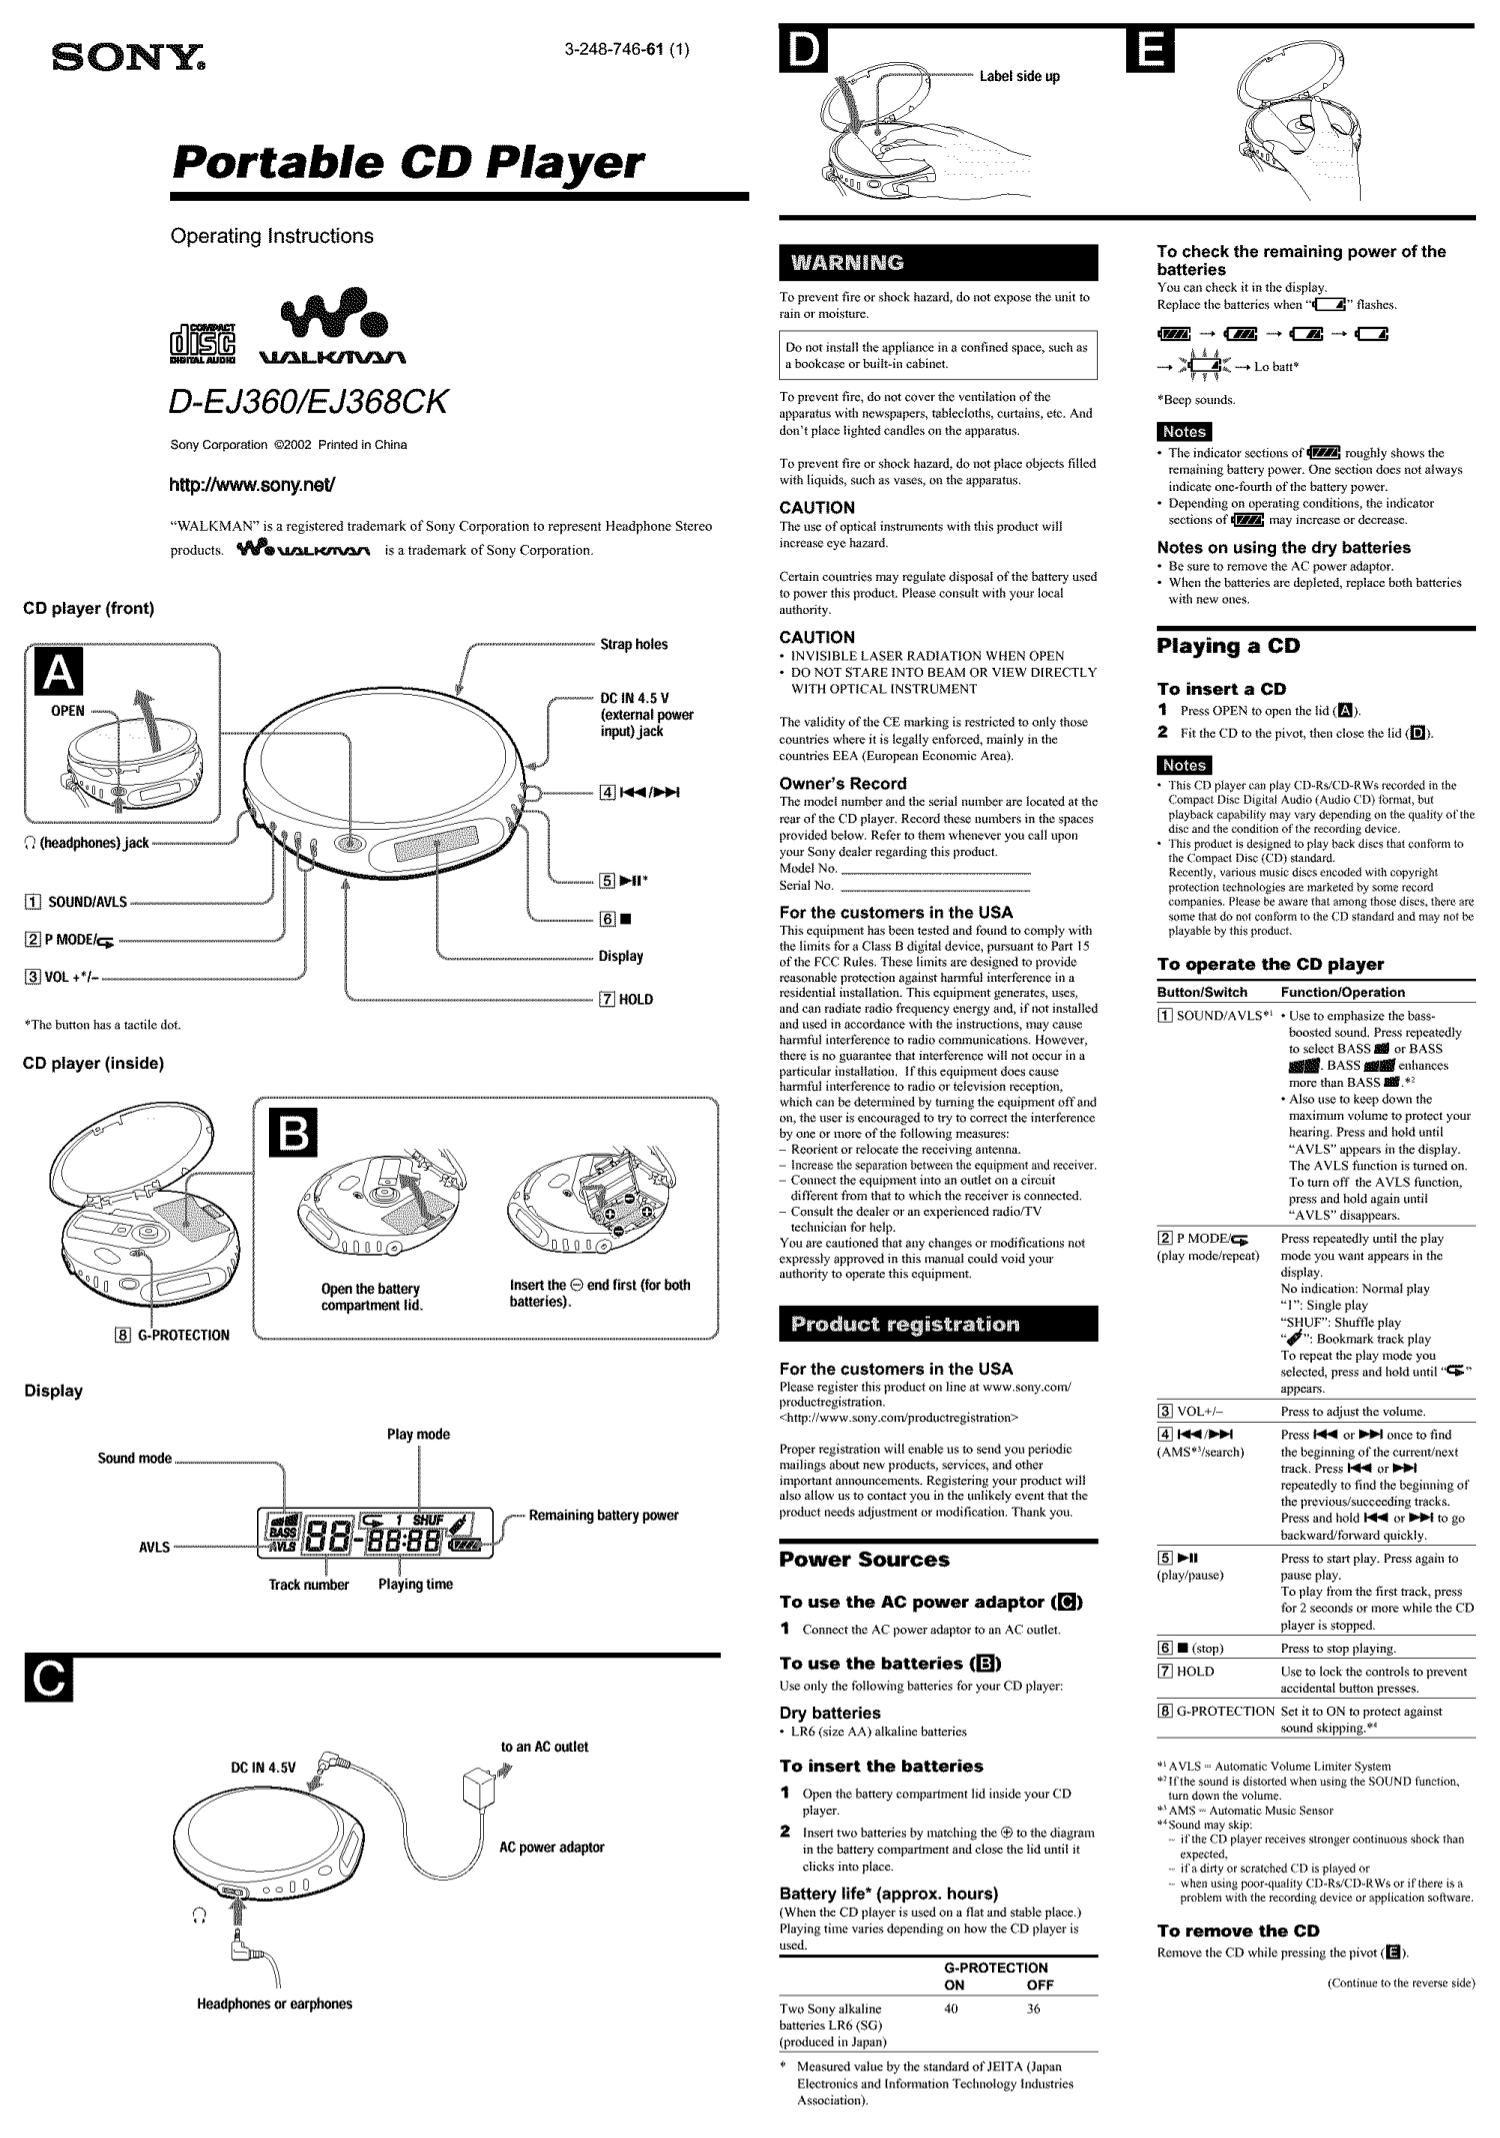 Download free pdf for Sony Walkman D-EJ368CK CD Player manual